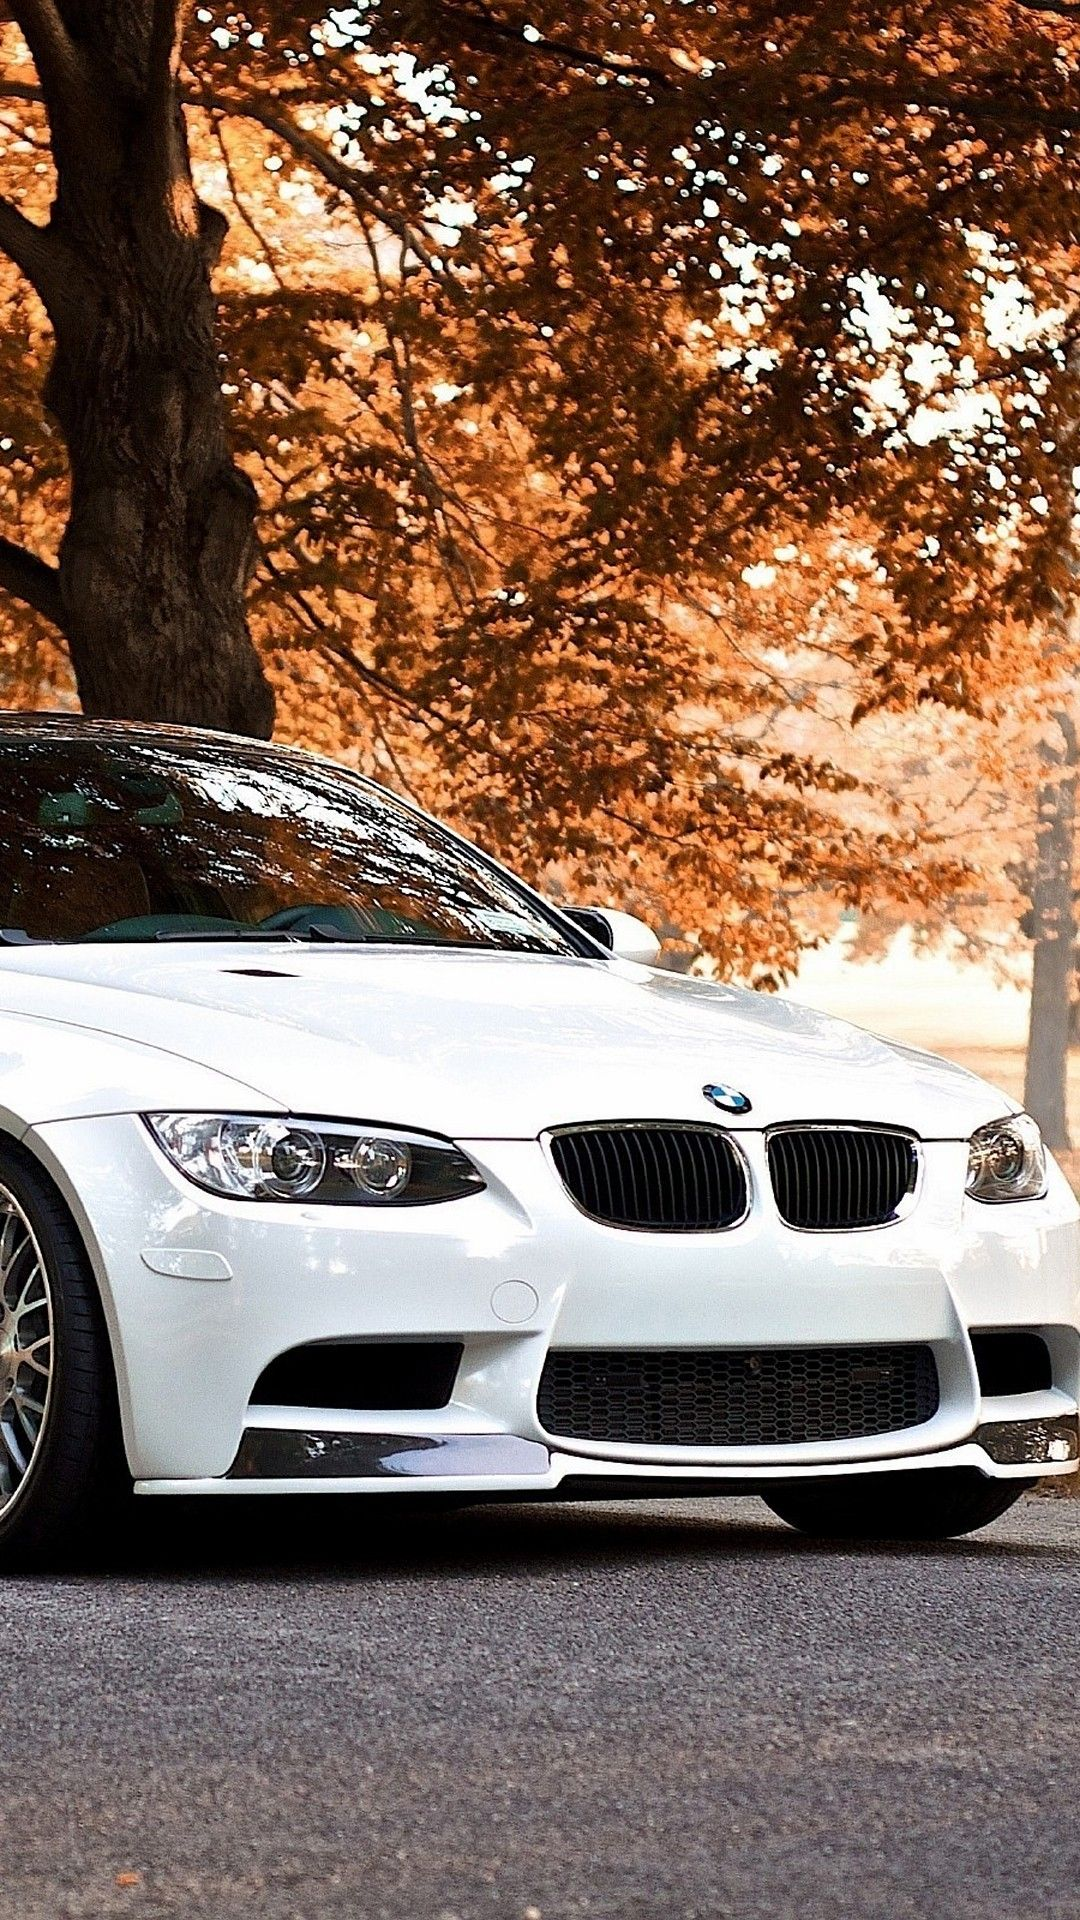 White Bmw M3 Autumn Background Hd Wallpaper Check More At Https